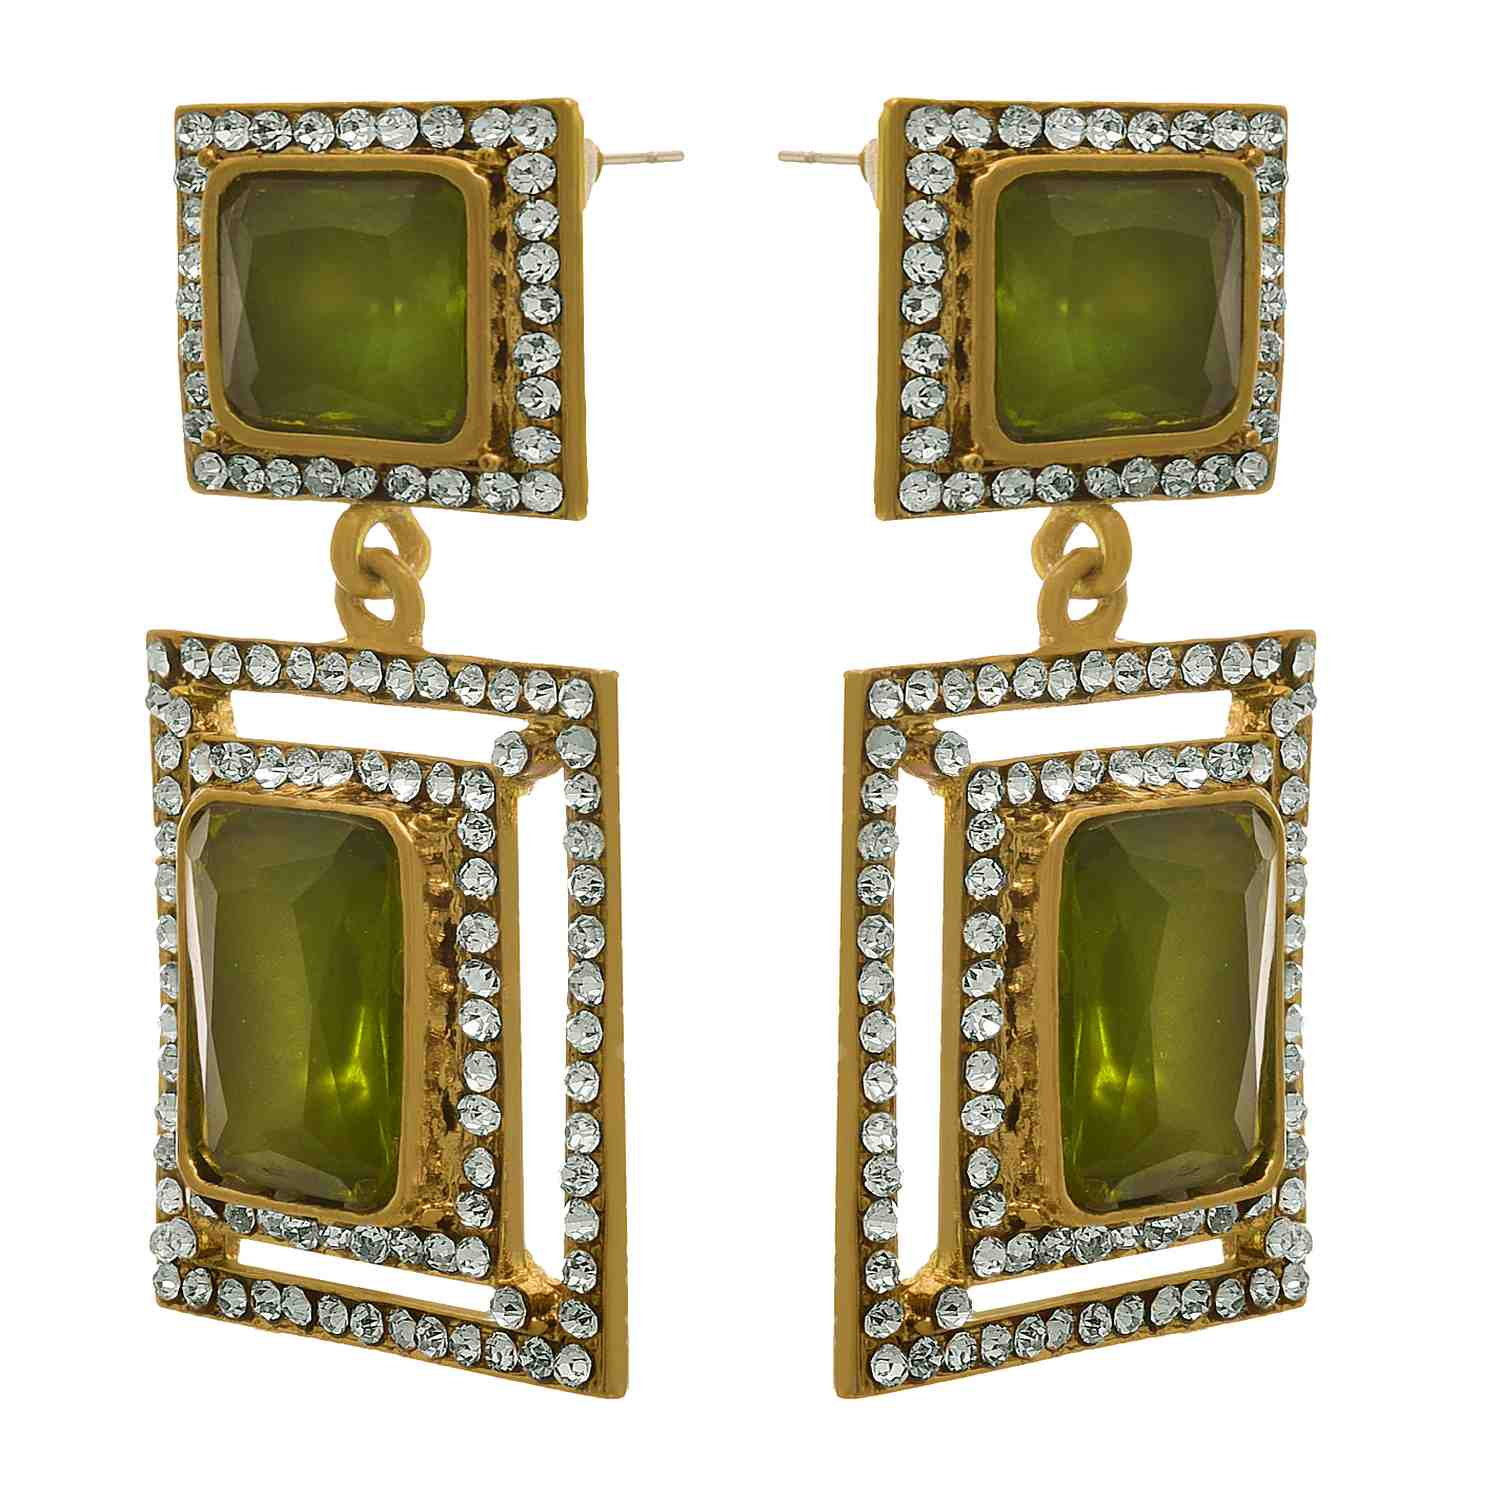 JFL - Fusion Bold Beautiful One Gram Gold Plated Crystal with Austrian Diamonds Designer Earrings Earring for Women & Girls.